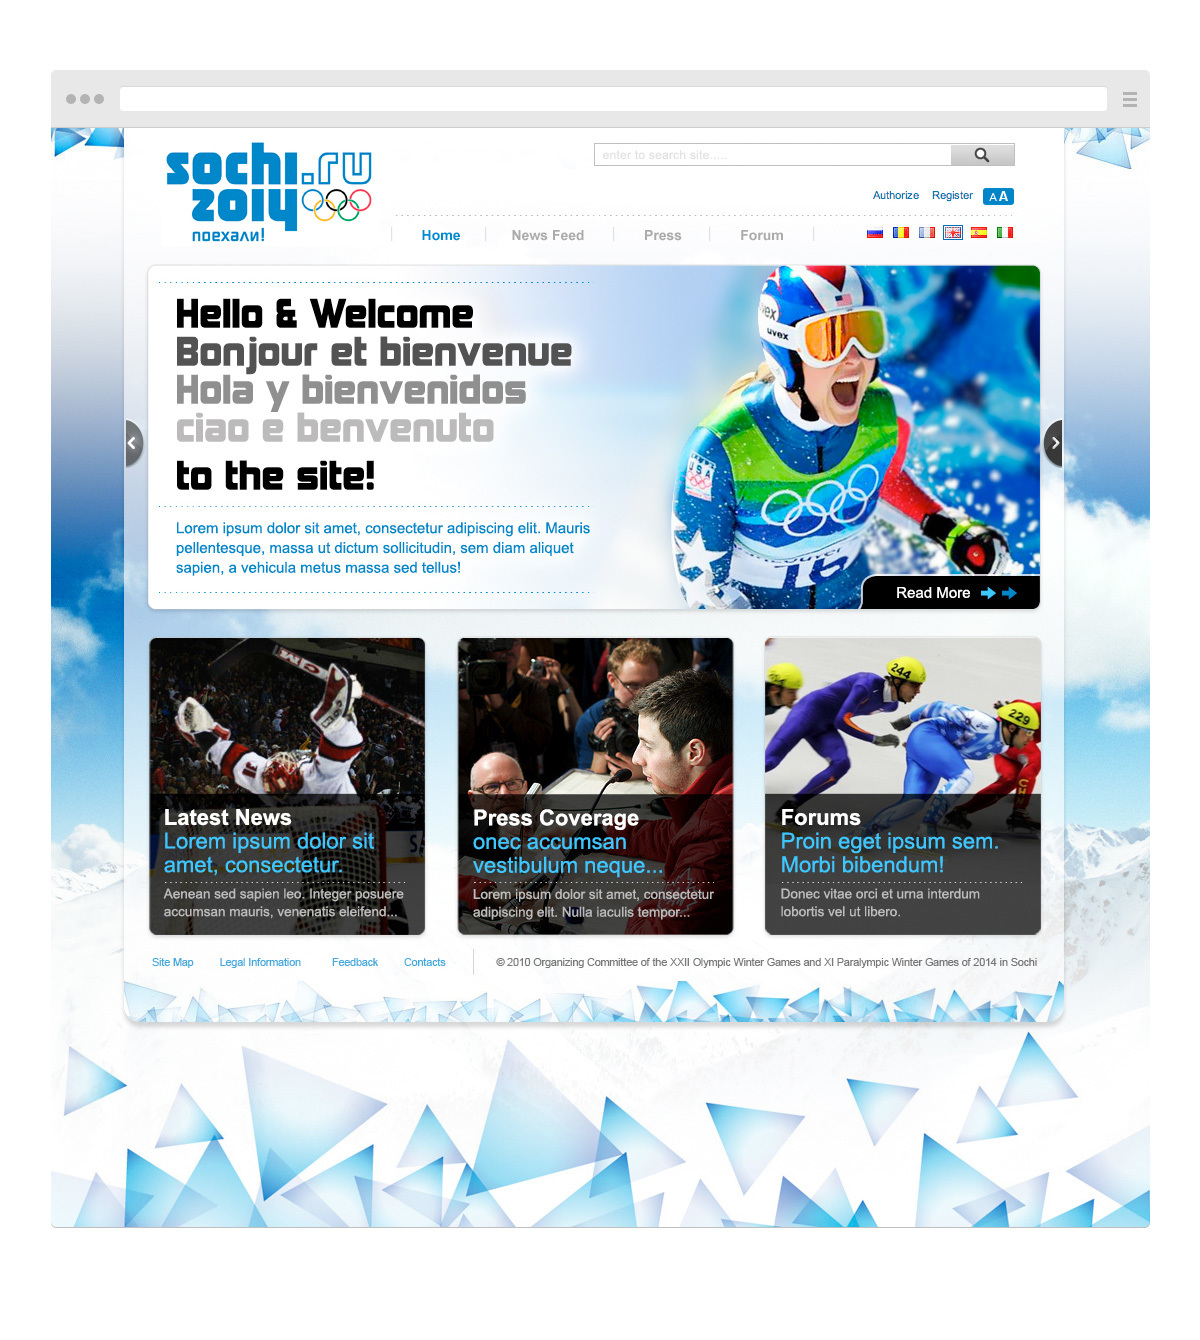 sochi chat rooms Can you imagine being a south korean hockey player and getting bumped to make room for with the sochi games that it had fuck all to → canadian chat.